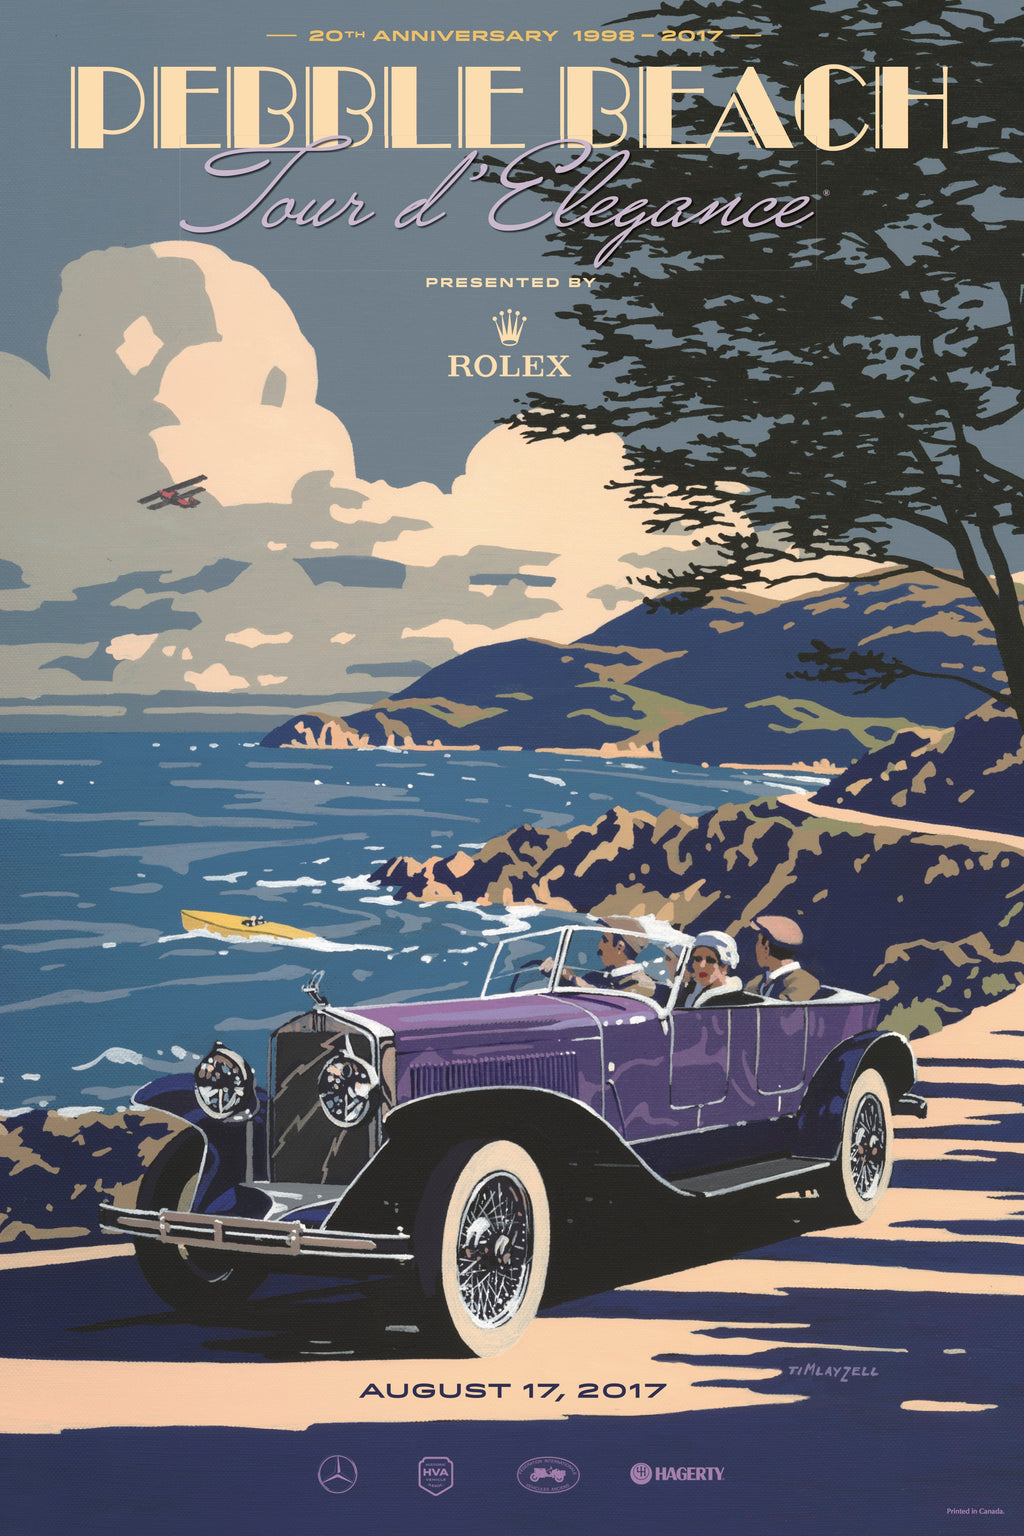 2017 Pebble Beach Tour d'Elegance Poster